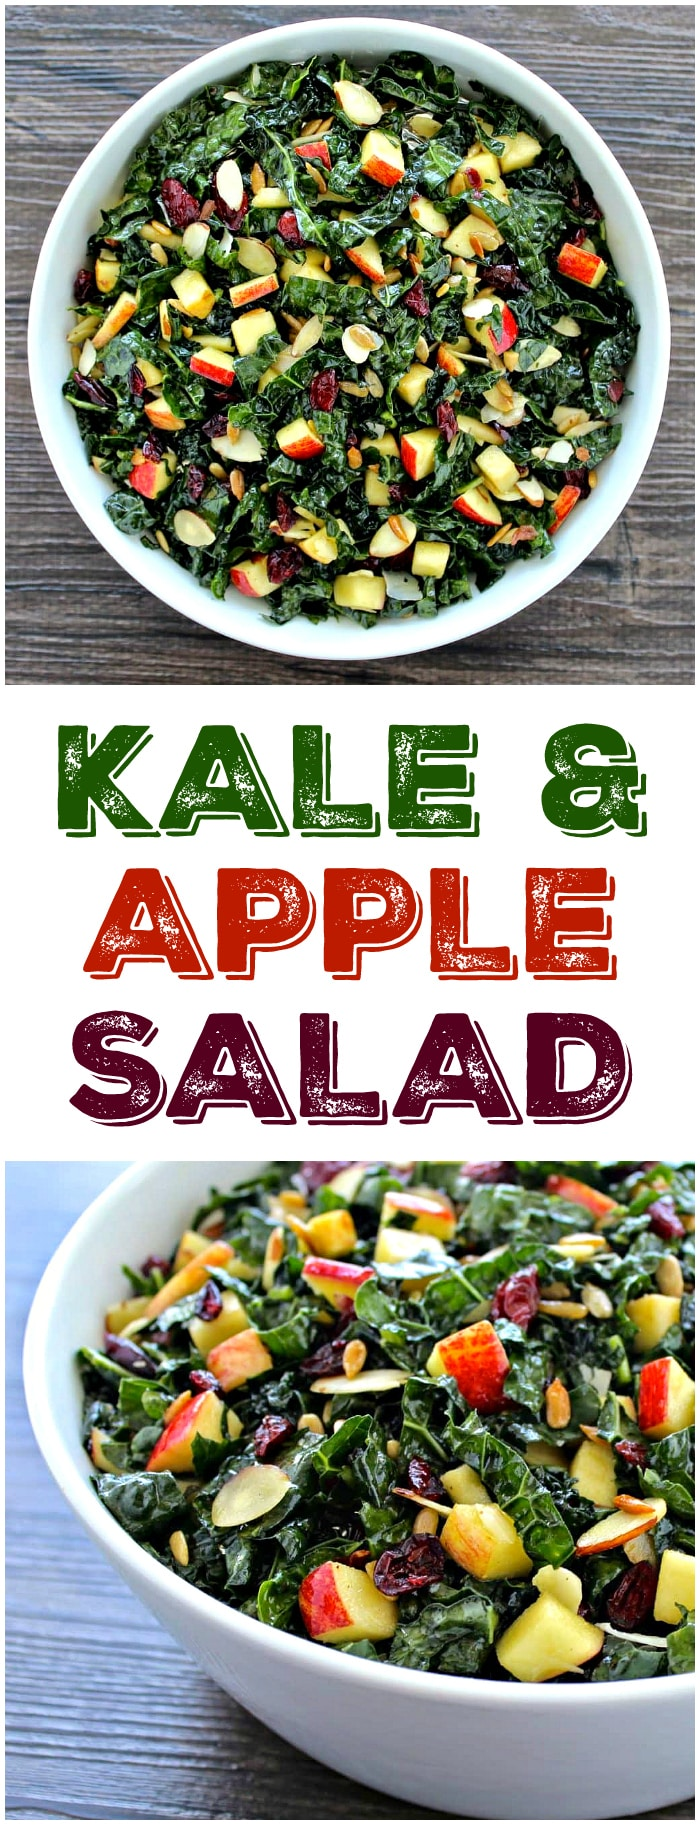 Fresh, clean ingredients come together in this visually stunning Tuscan Kale & Apple Salad!